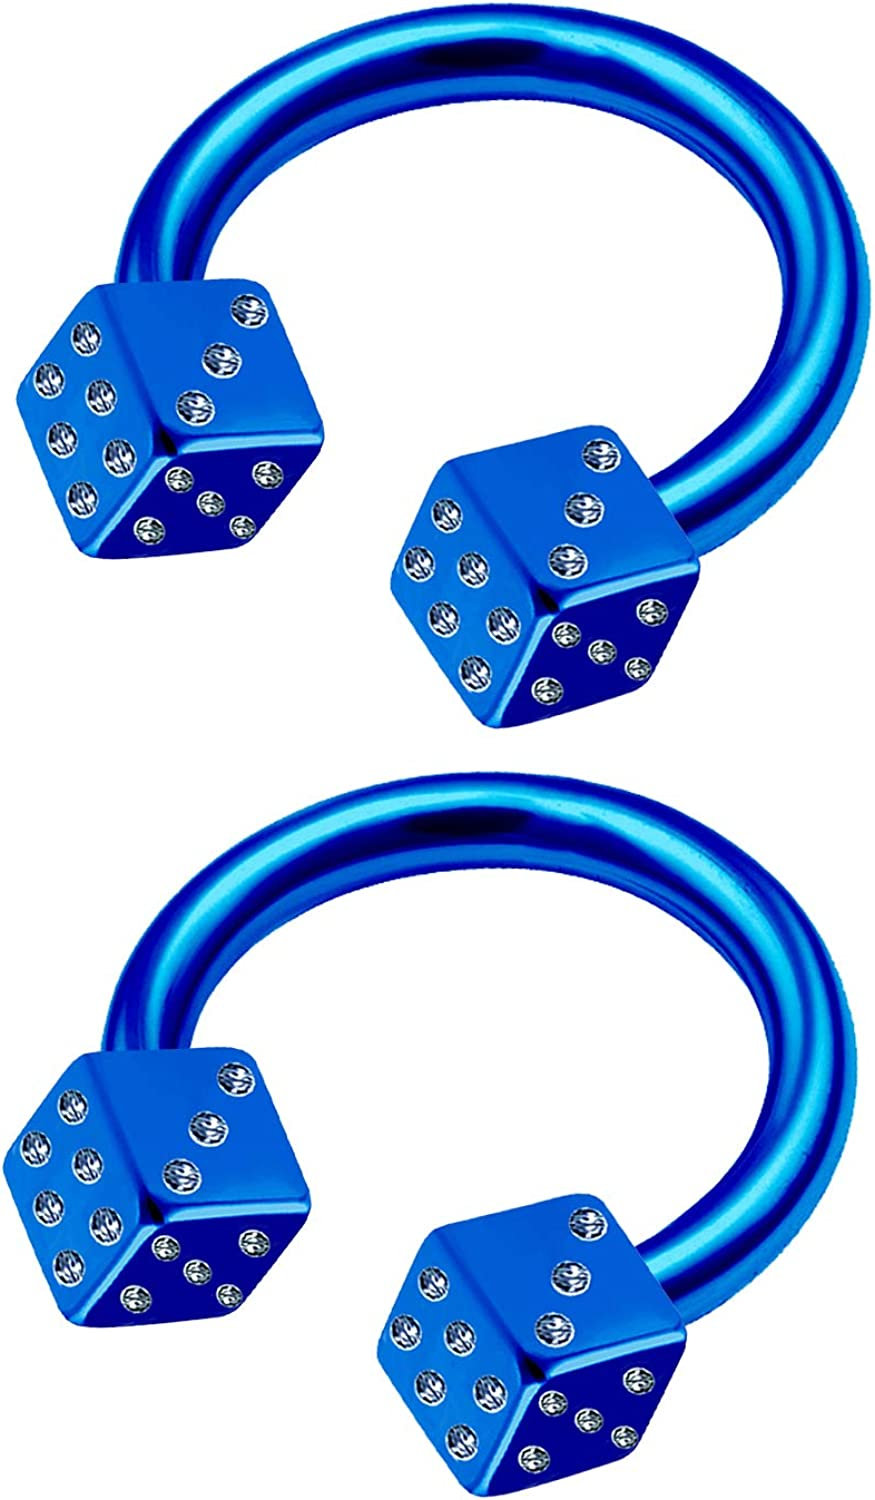 MATIGA 2Pcs Anodized 16 Gauge 5/16 8mm Horseshoe Earrings Piercing Jewelry Septum Nose Lip Tragus Cartilage 3mm Dice More Choices